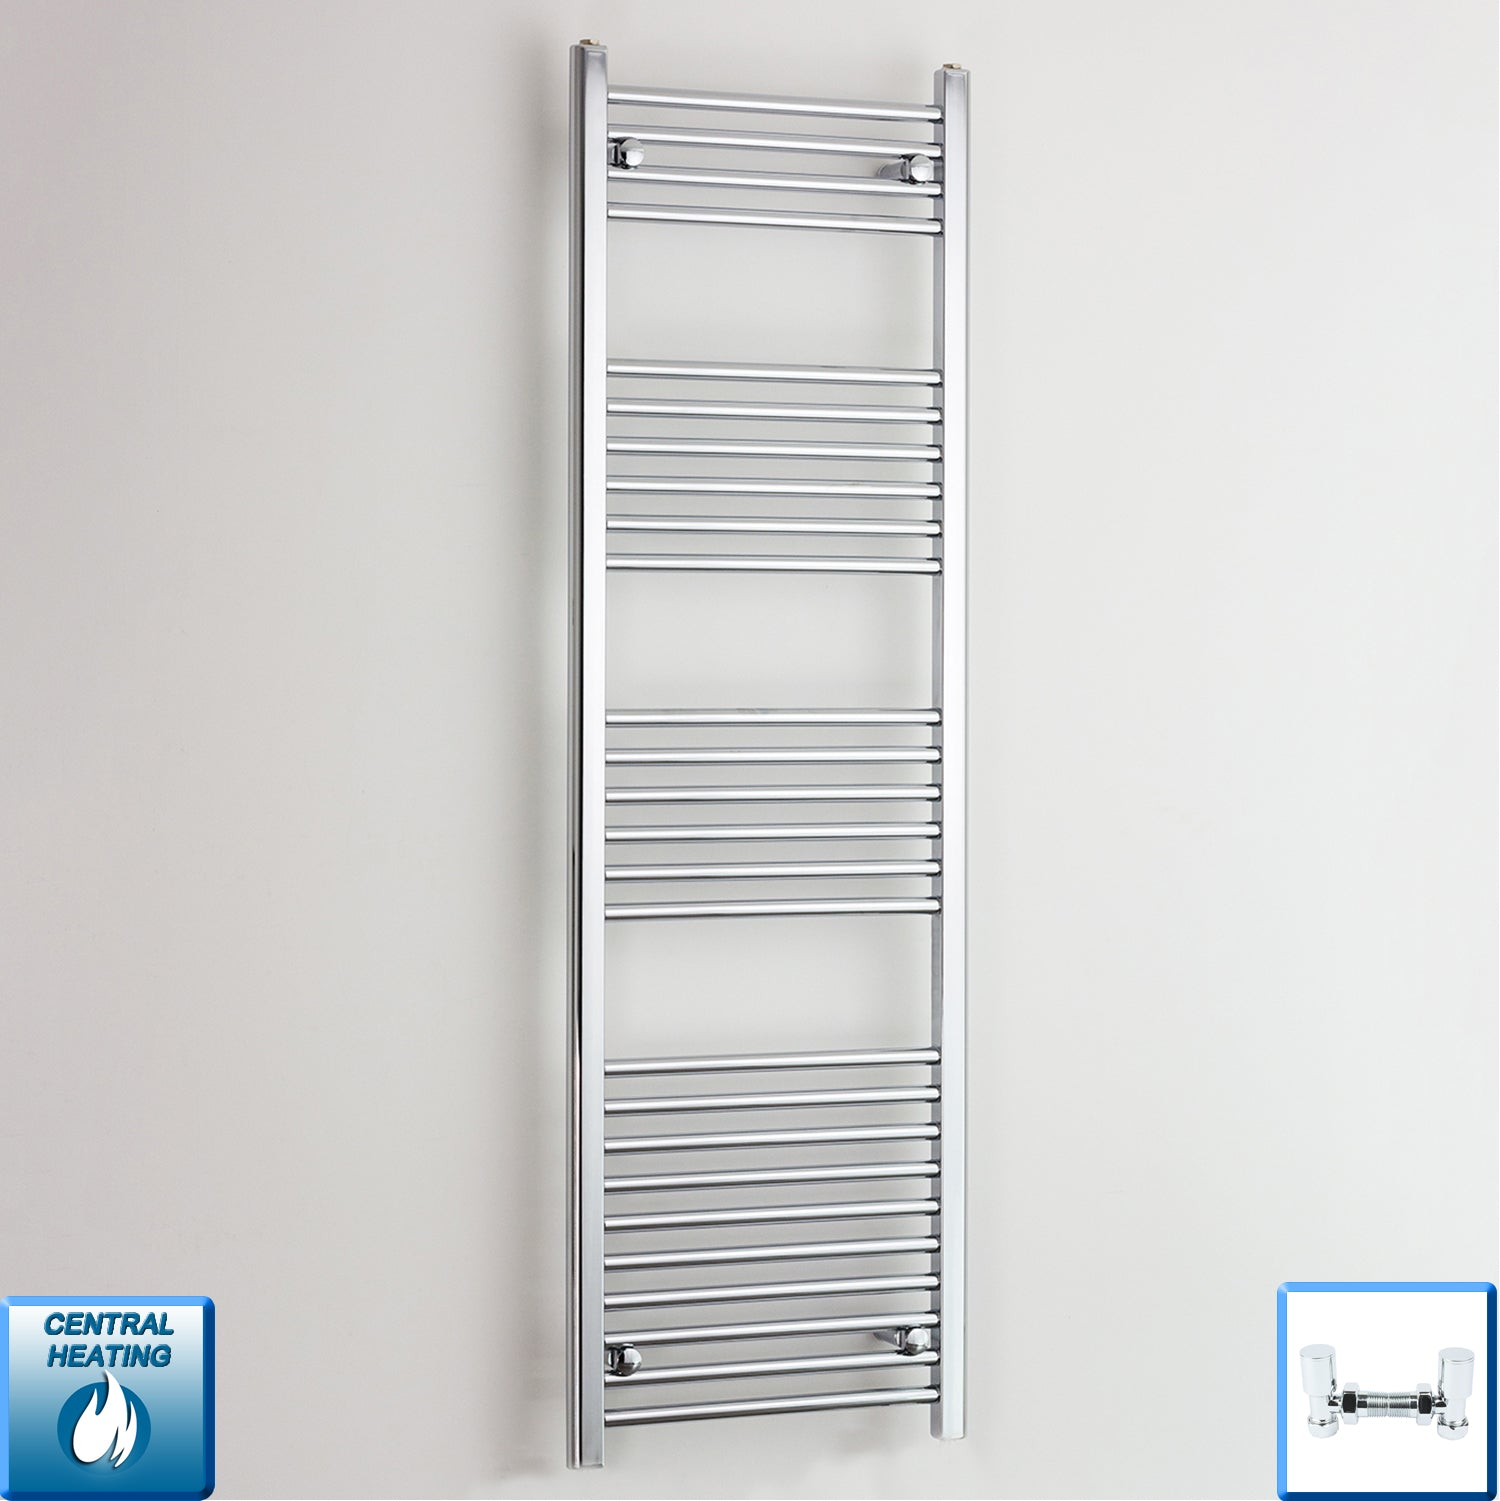 400mm Wide 1600mm High Flat Chrome Heated Towel Rail Radiator HTR,With Angled Valve